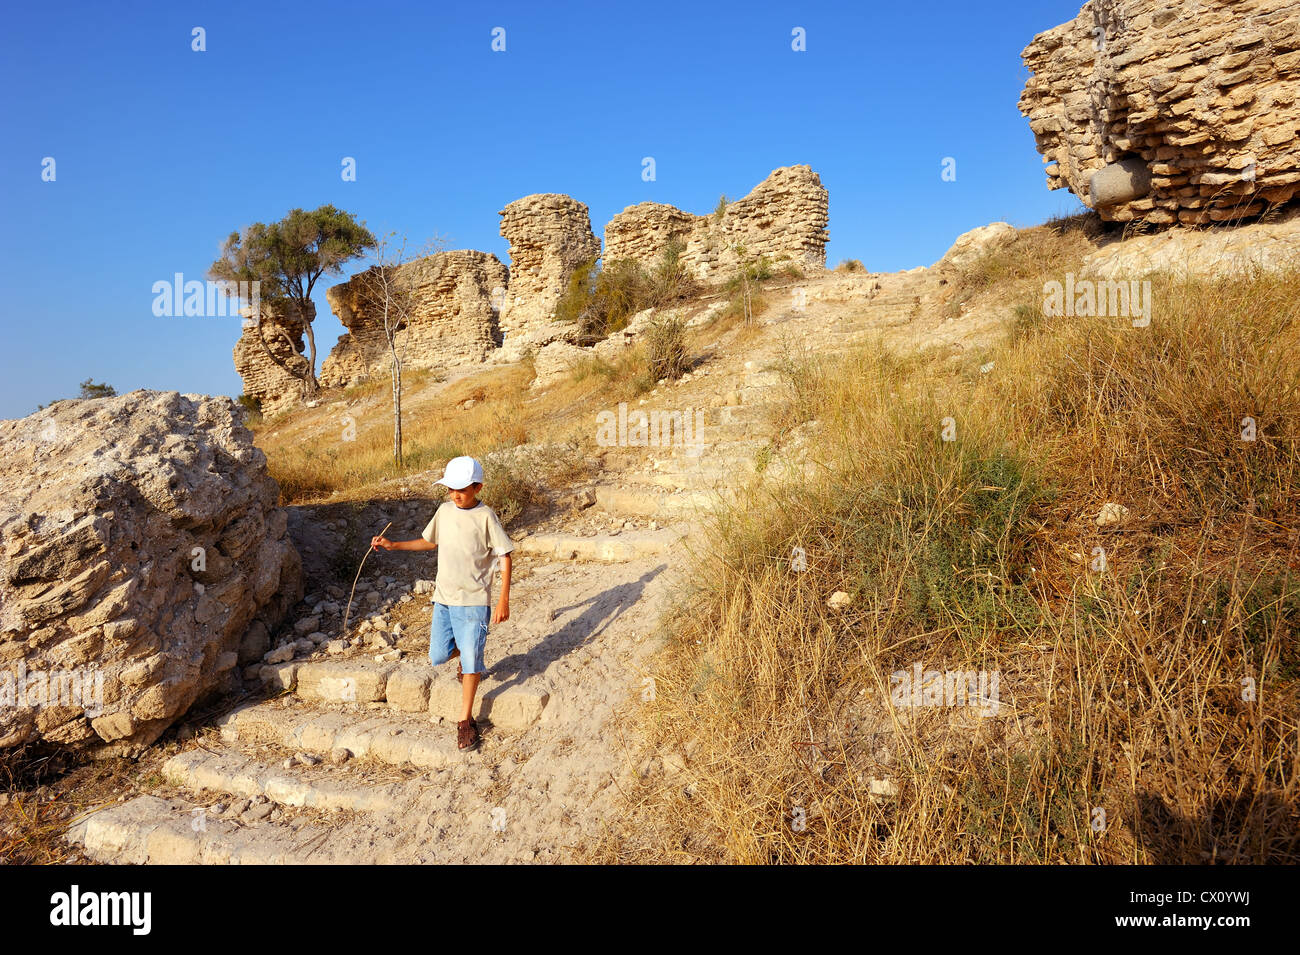 Remnants of fortifications that were built by the crusaders in Ashqelon, Israel - Stock Image